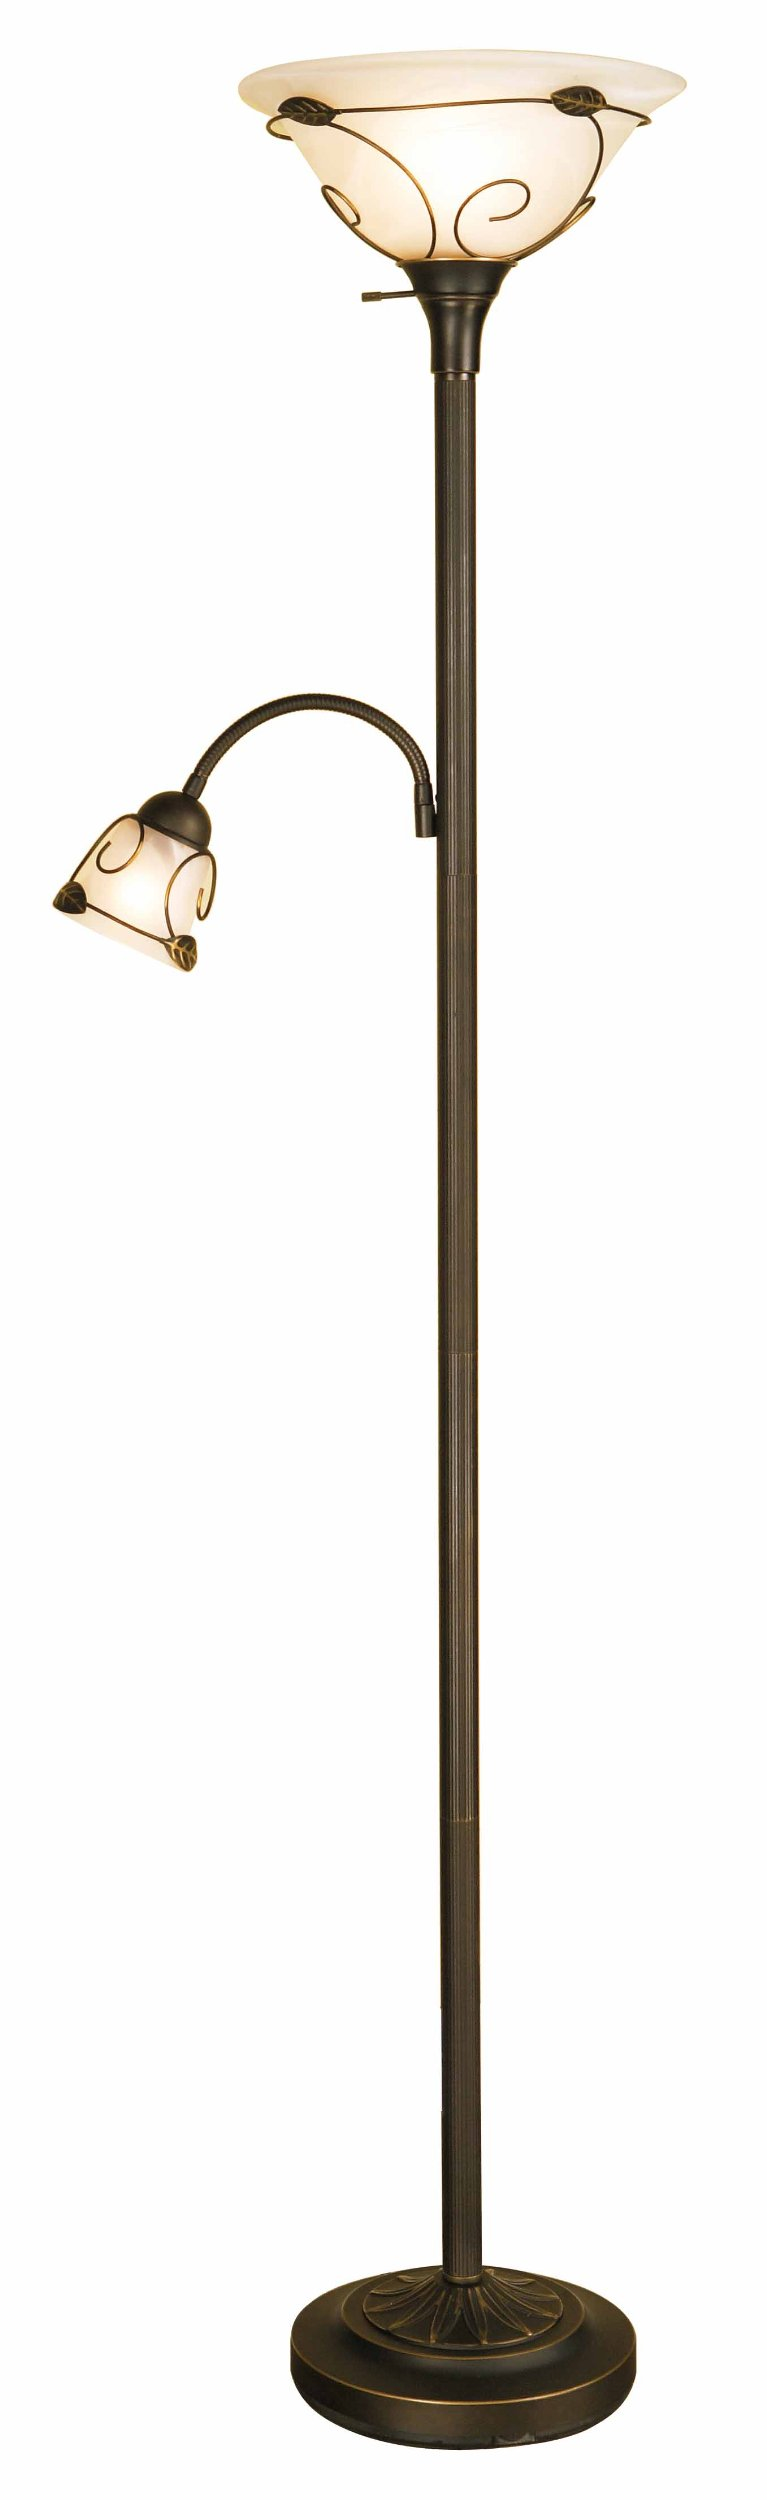 lighting jm1 884 71 inch 100 watt incandescent torchiere floor lamp. Black Bedroom Furniture Sets. Home Design Ideas